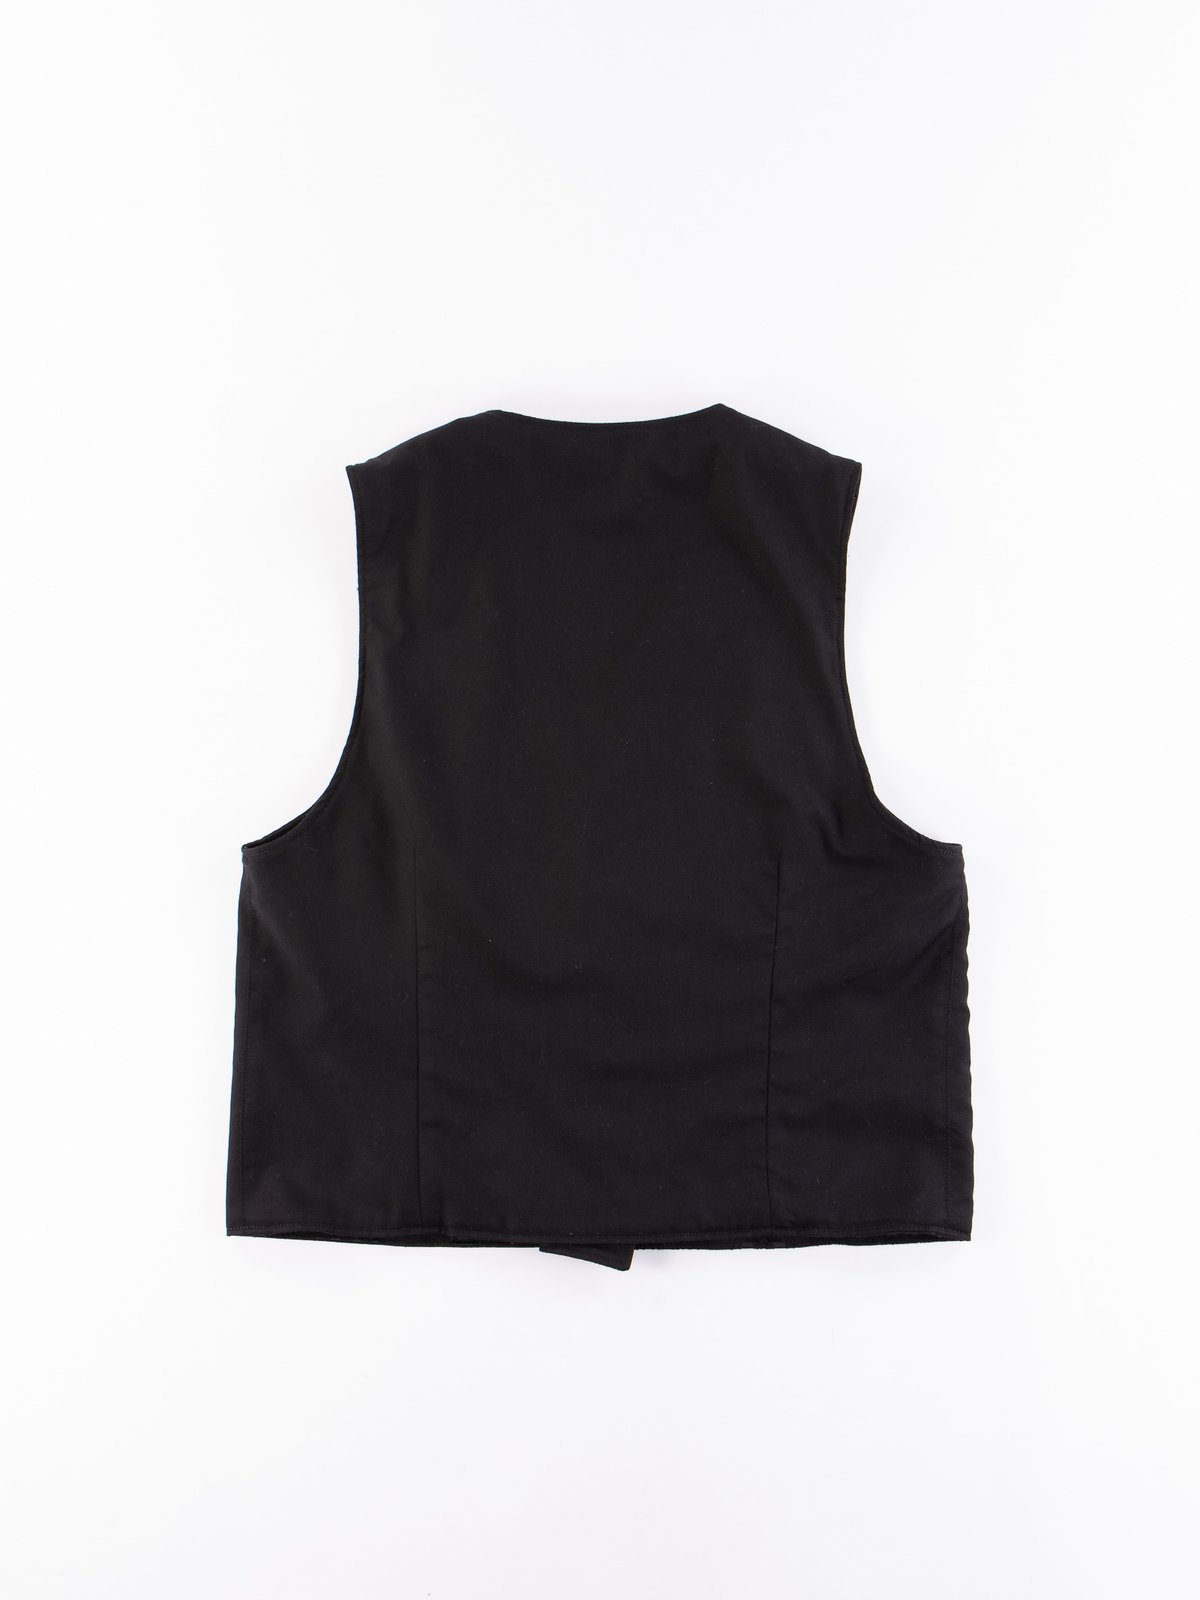 Black Worsted Wool Gabardine Reversible Vest - Image 6